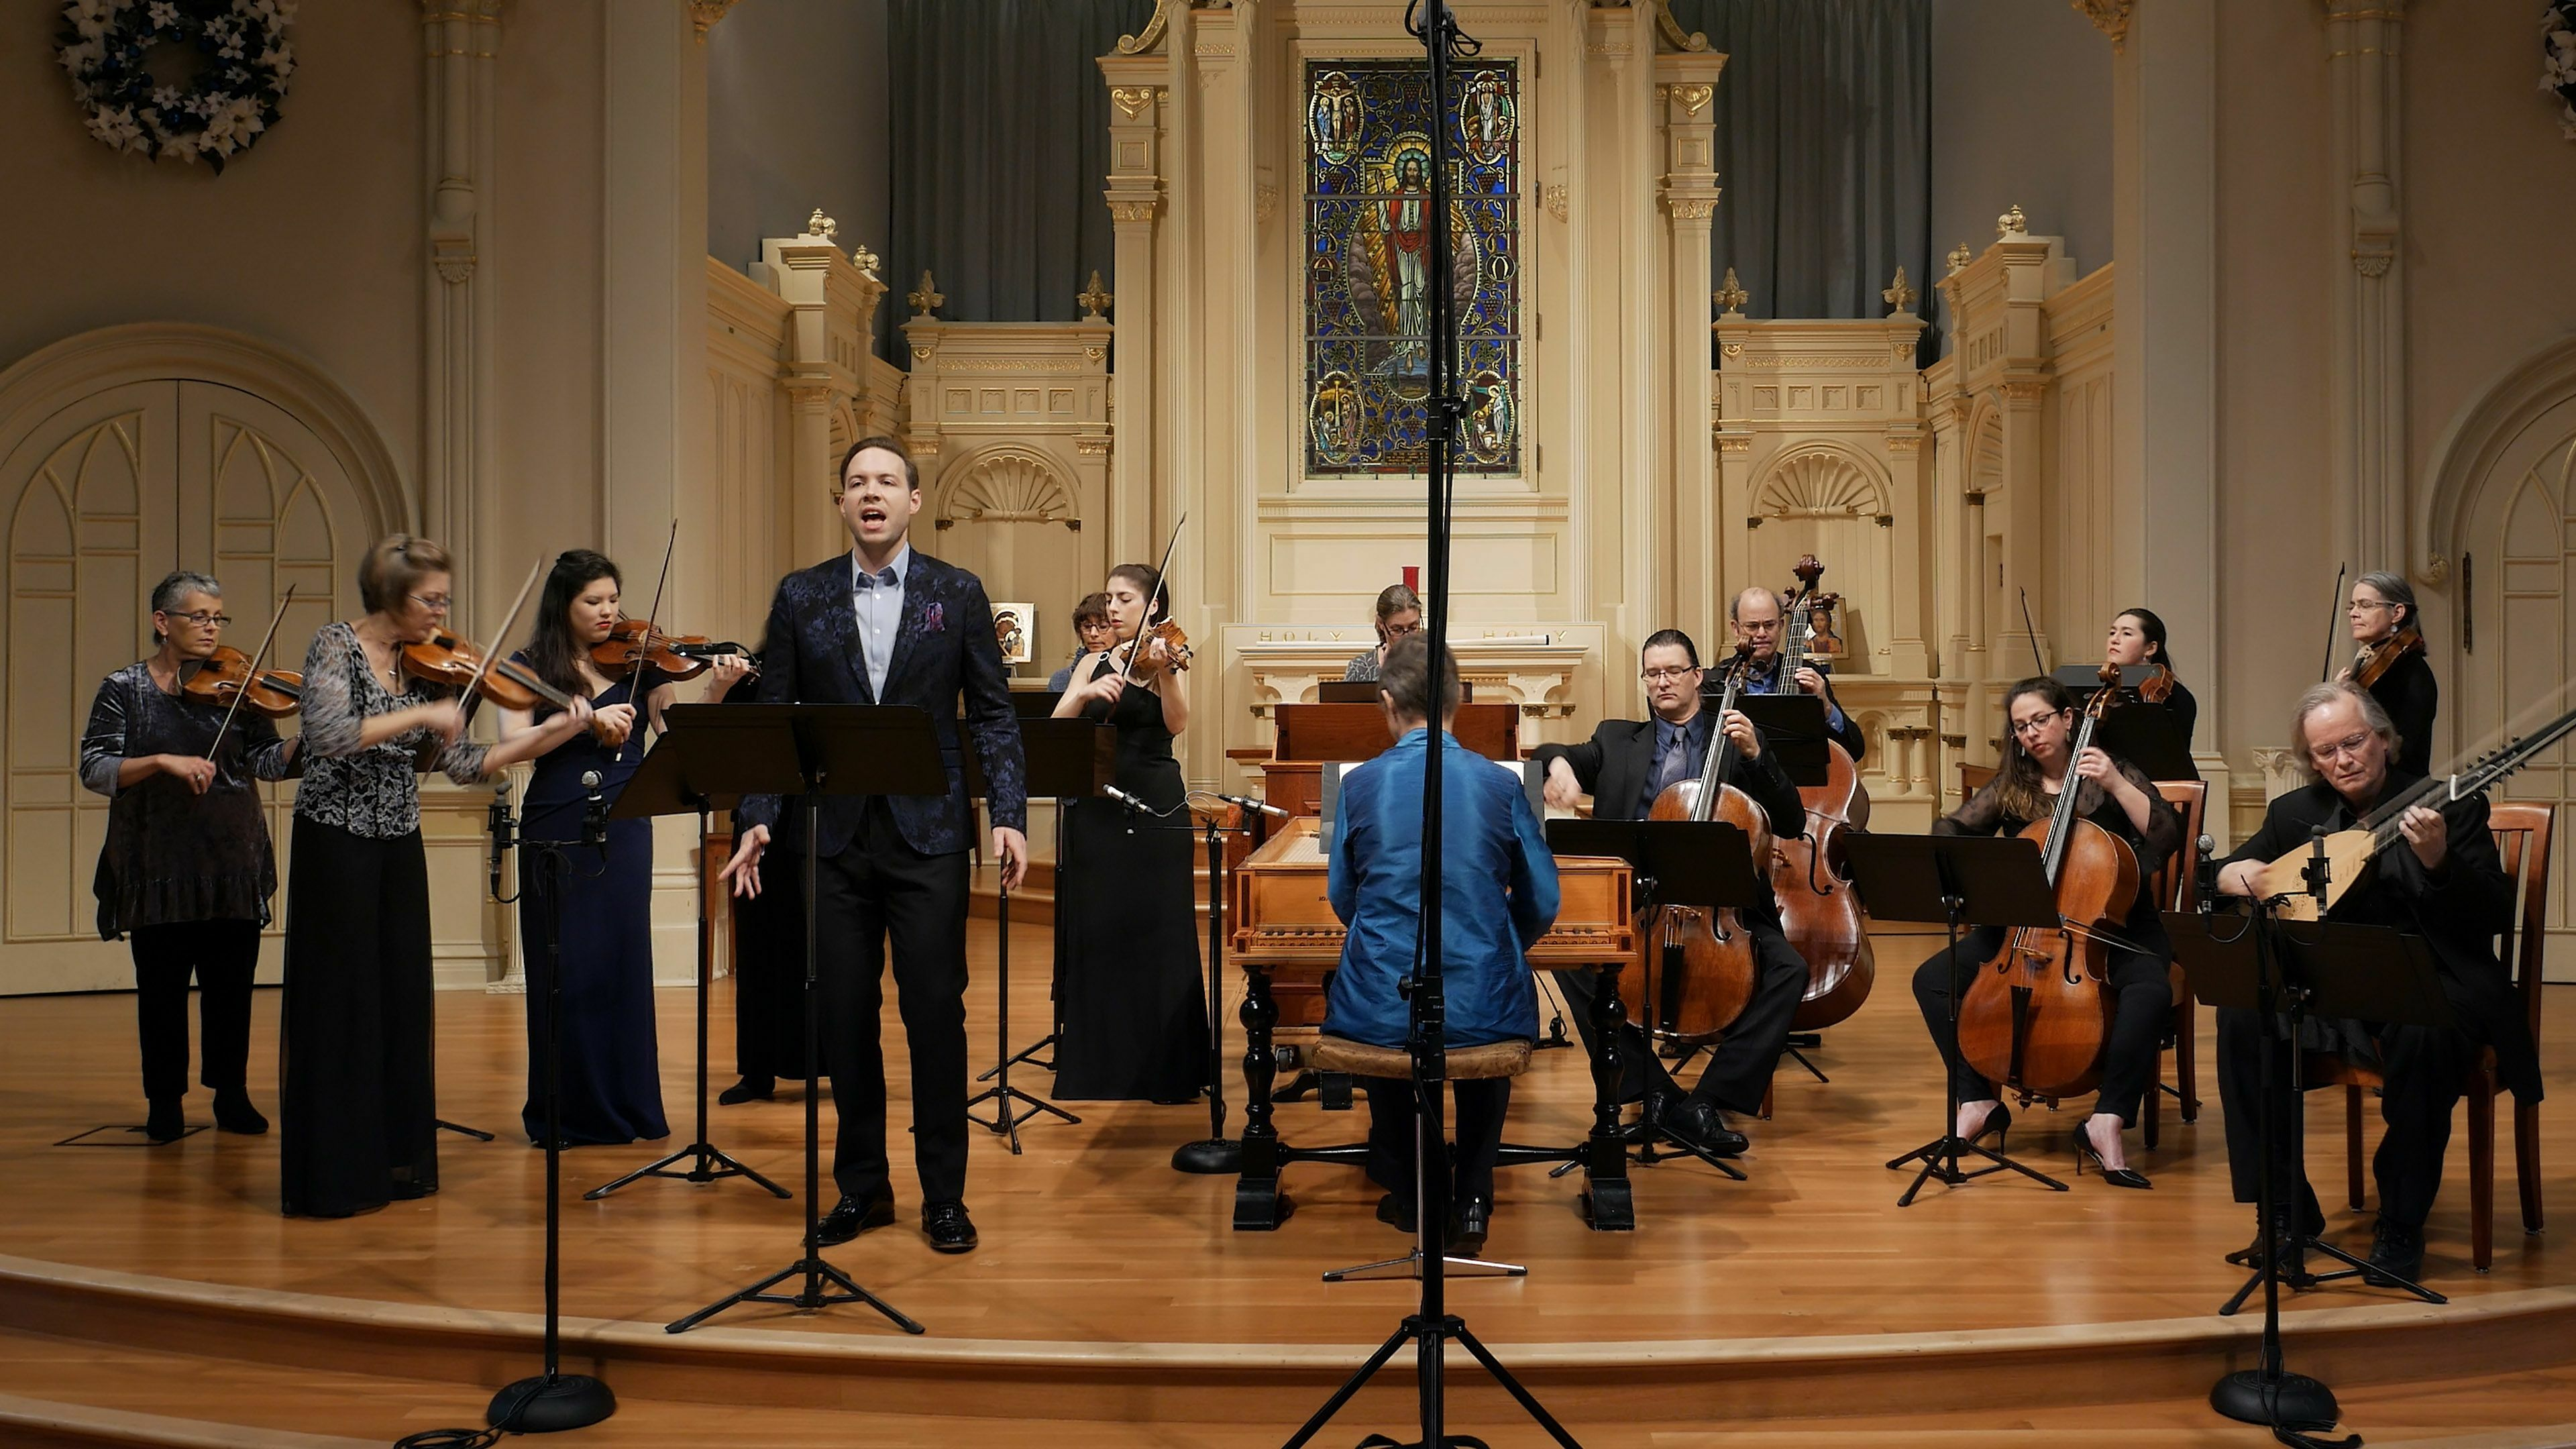 Voices of Music: The Art of the Countertenor - Online